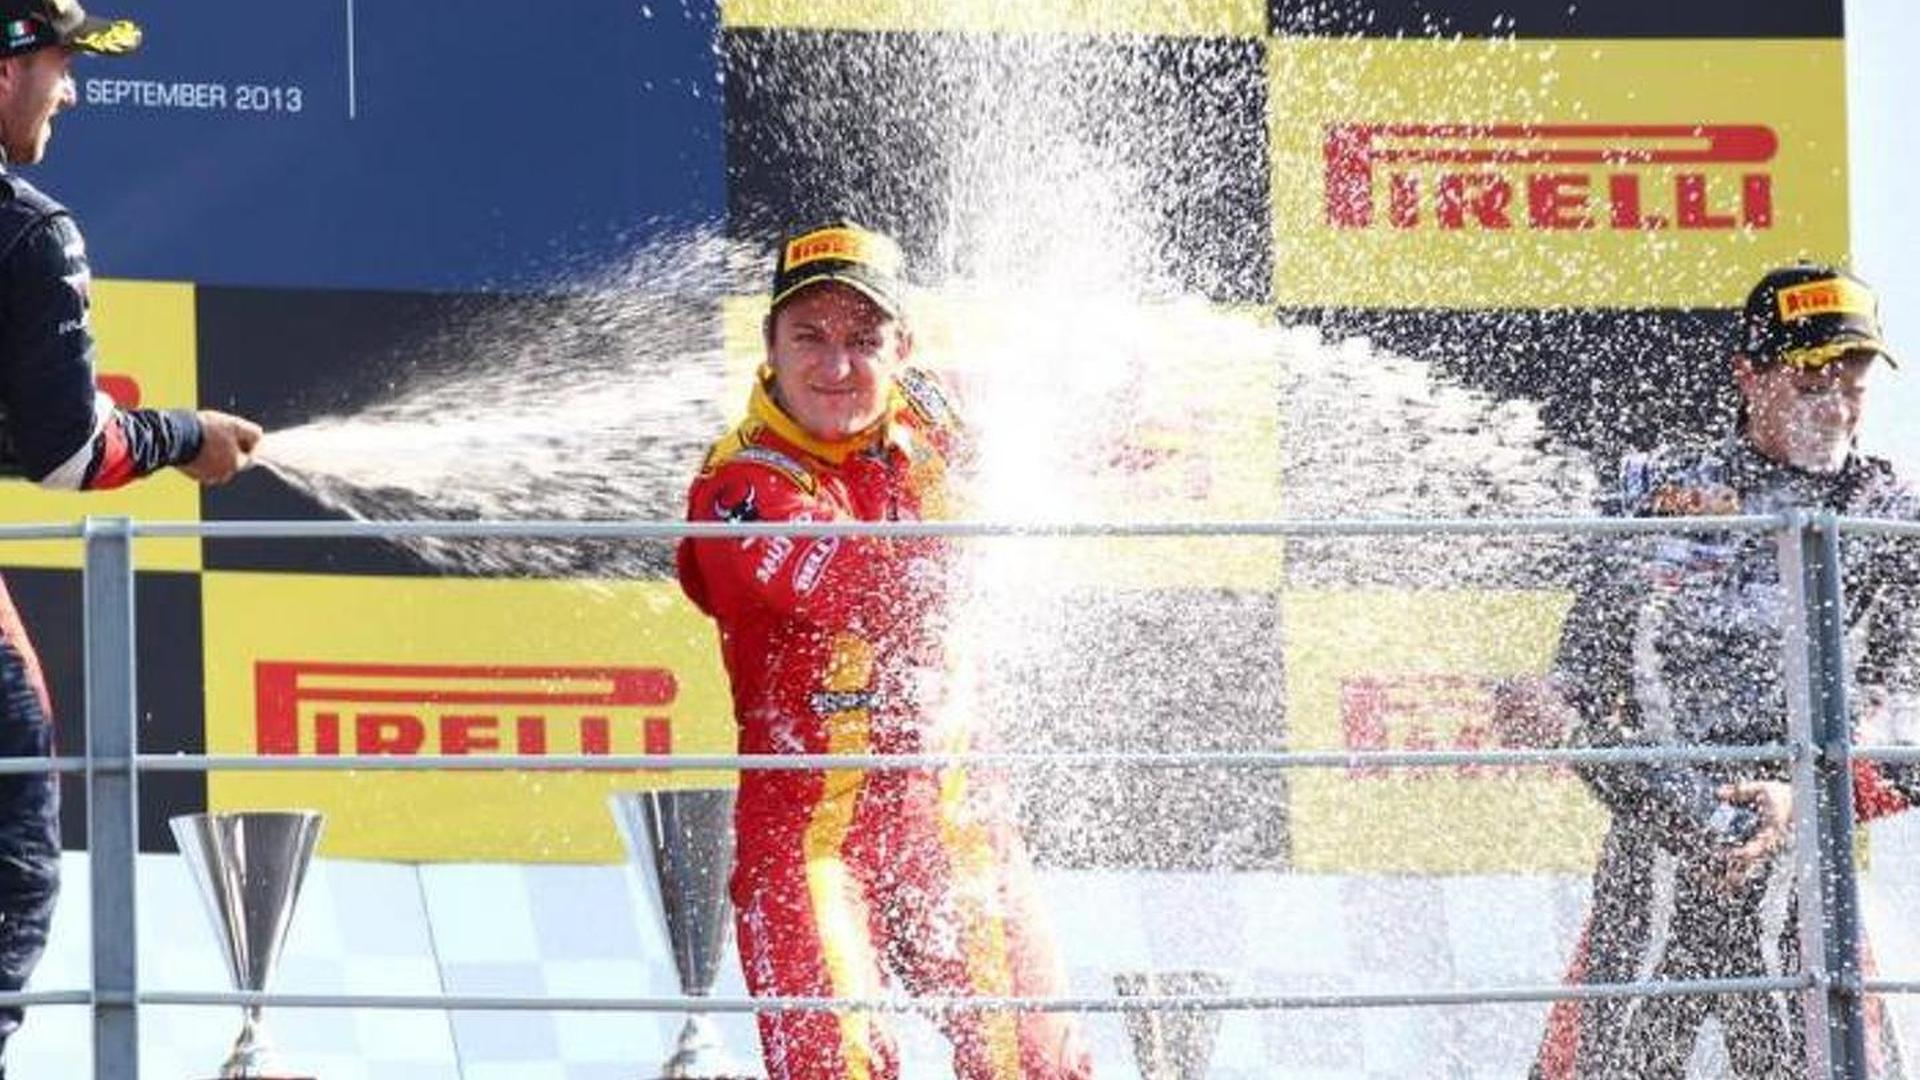 Disappointed Leimer 'deserves' F1 seat